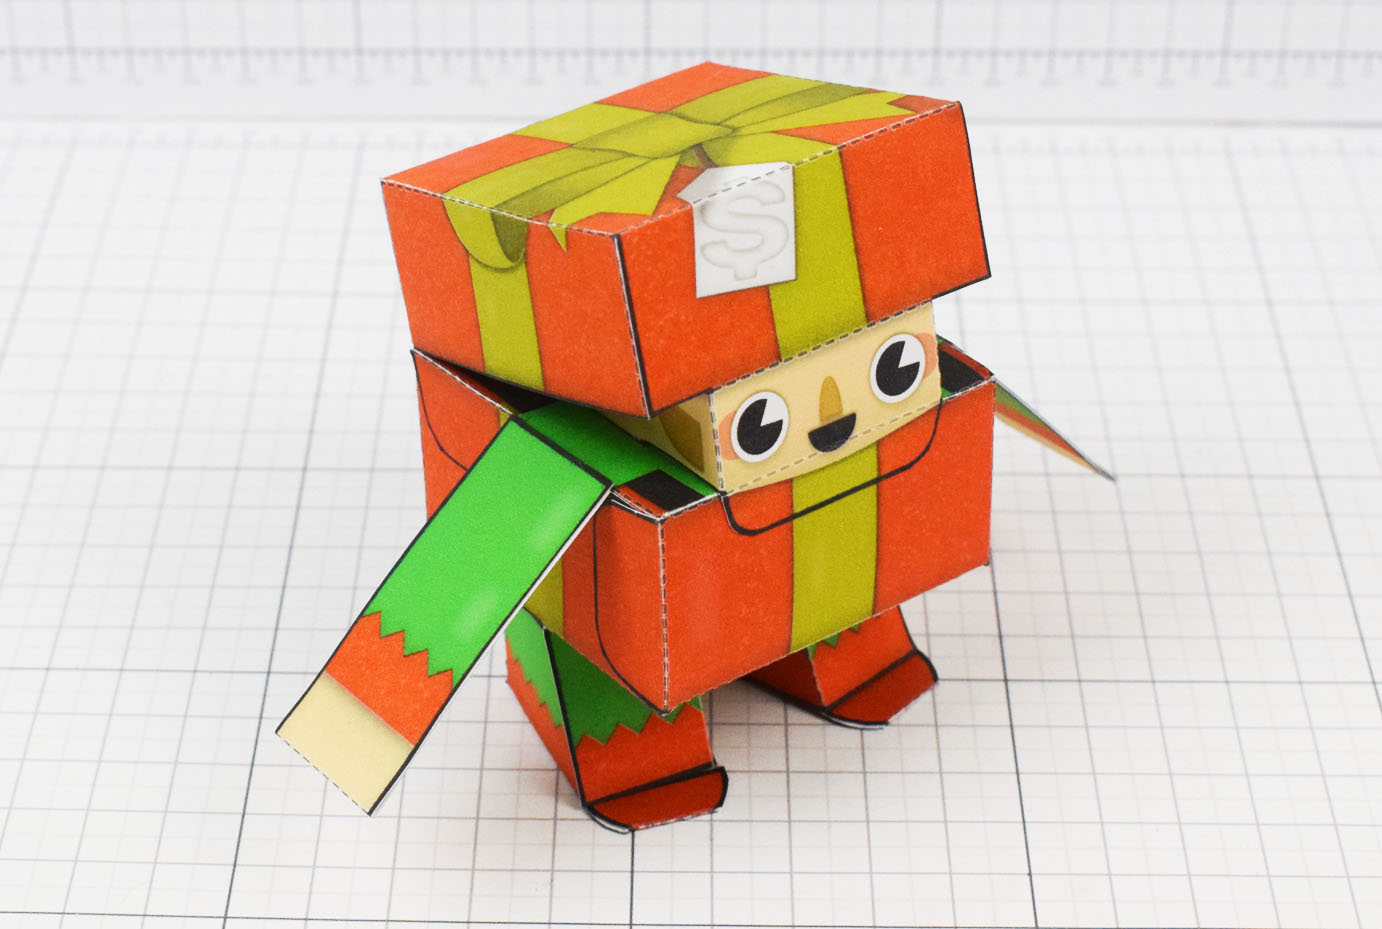 PTI Christmas Paper Toy Craft Decoration CuteBox Elf Image - Main